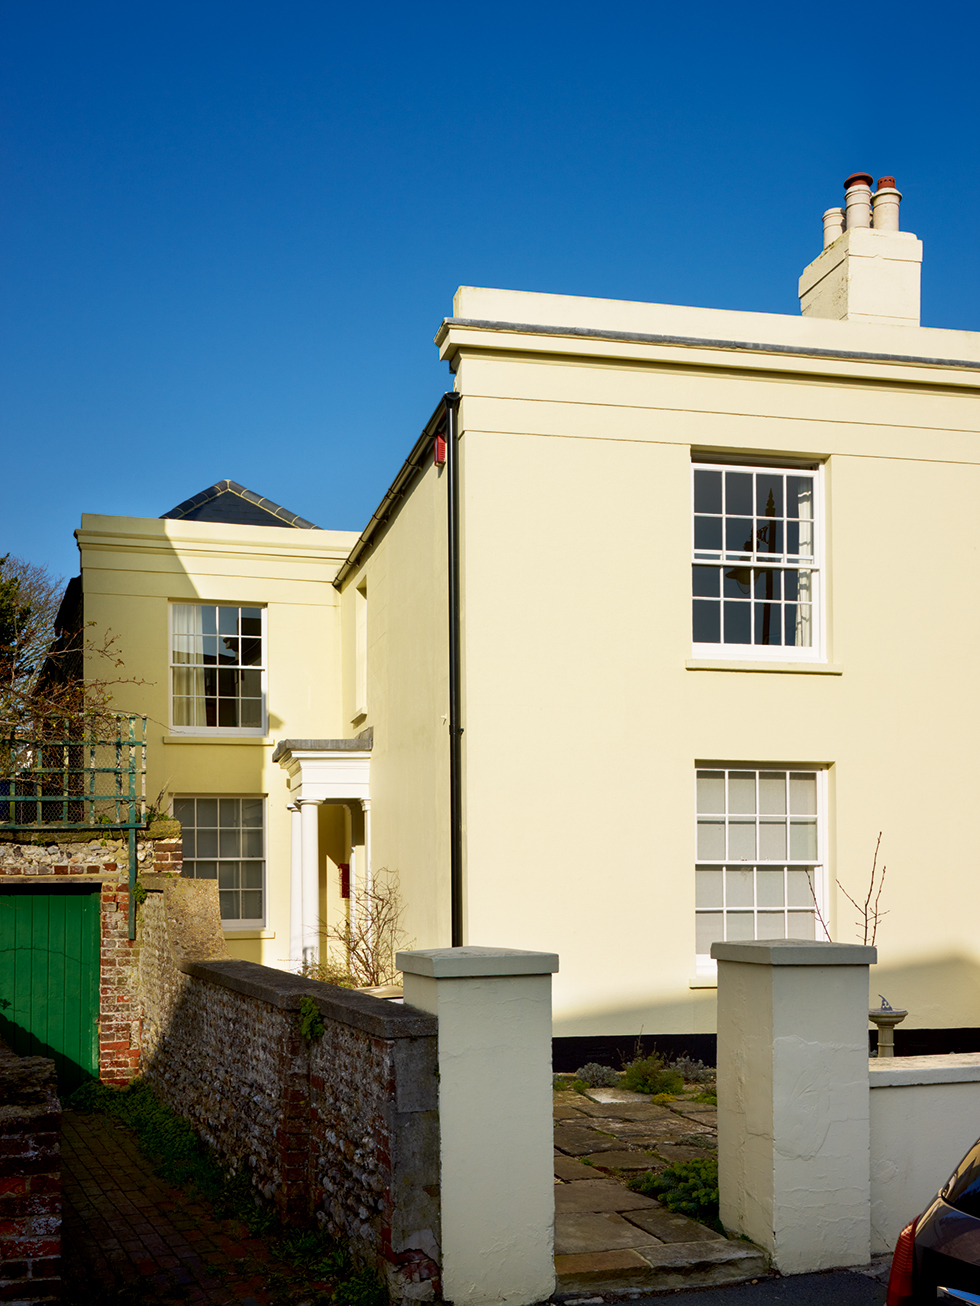 Georgian house with sympathetic two-storey extension